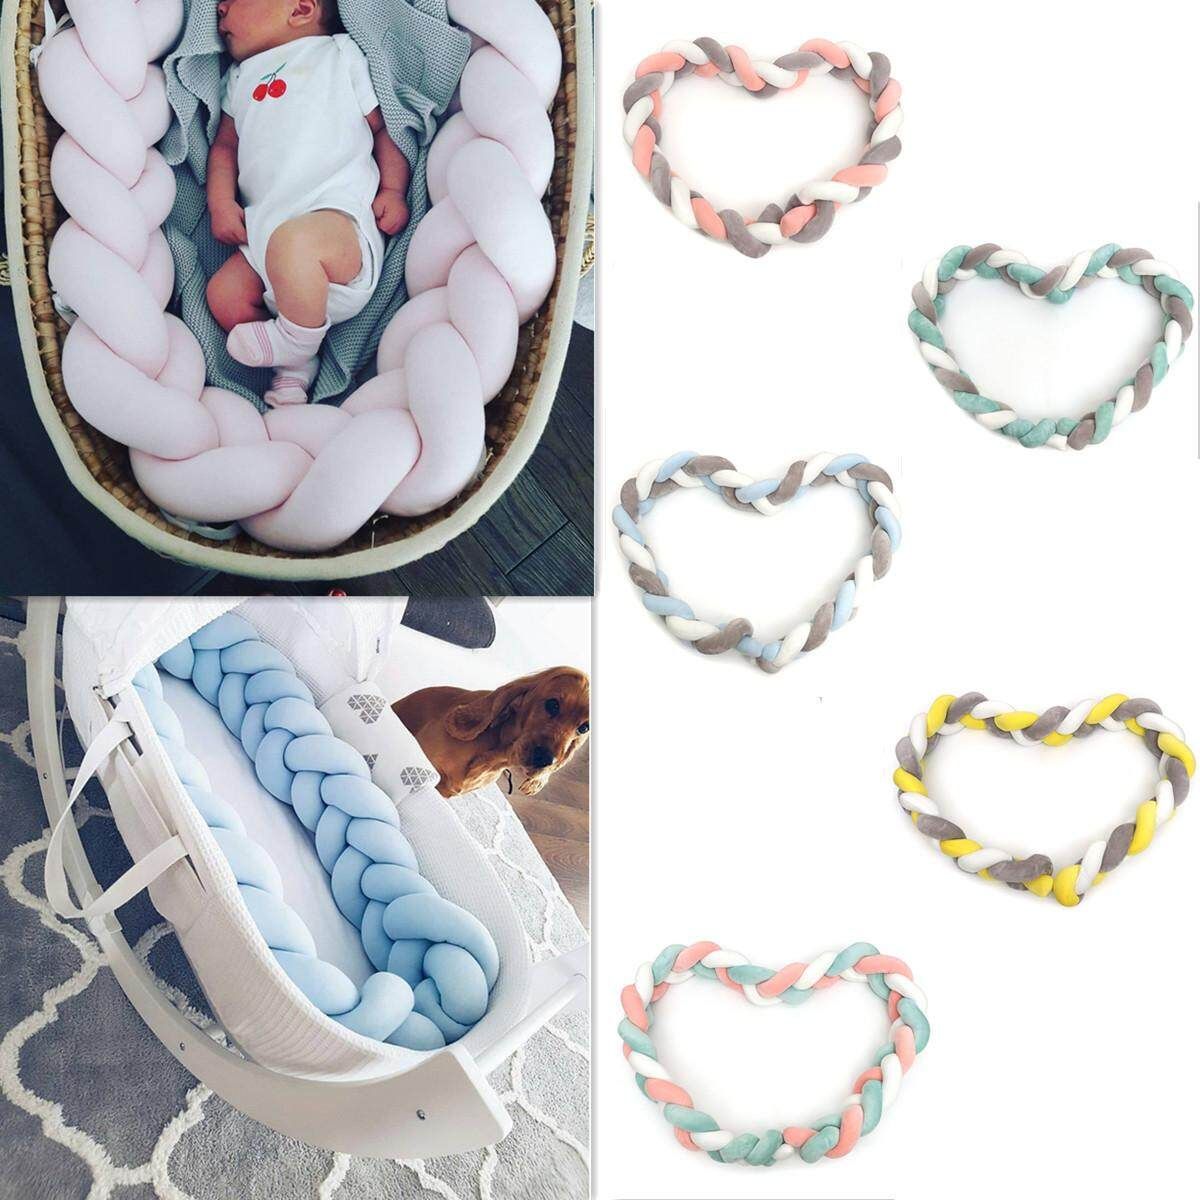 2M Infant Baby Plush Bumper Bed Bedding Crib Cot Braid Pillow Cushion Protector White Grey Pink Intl Shopping